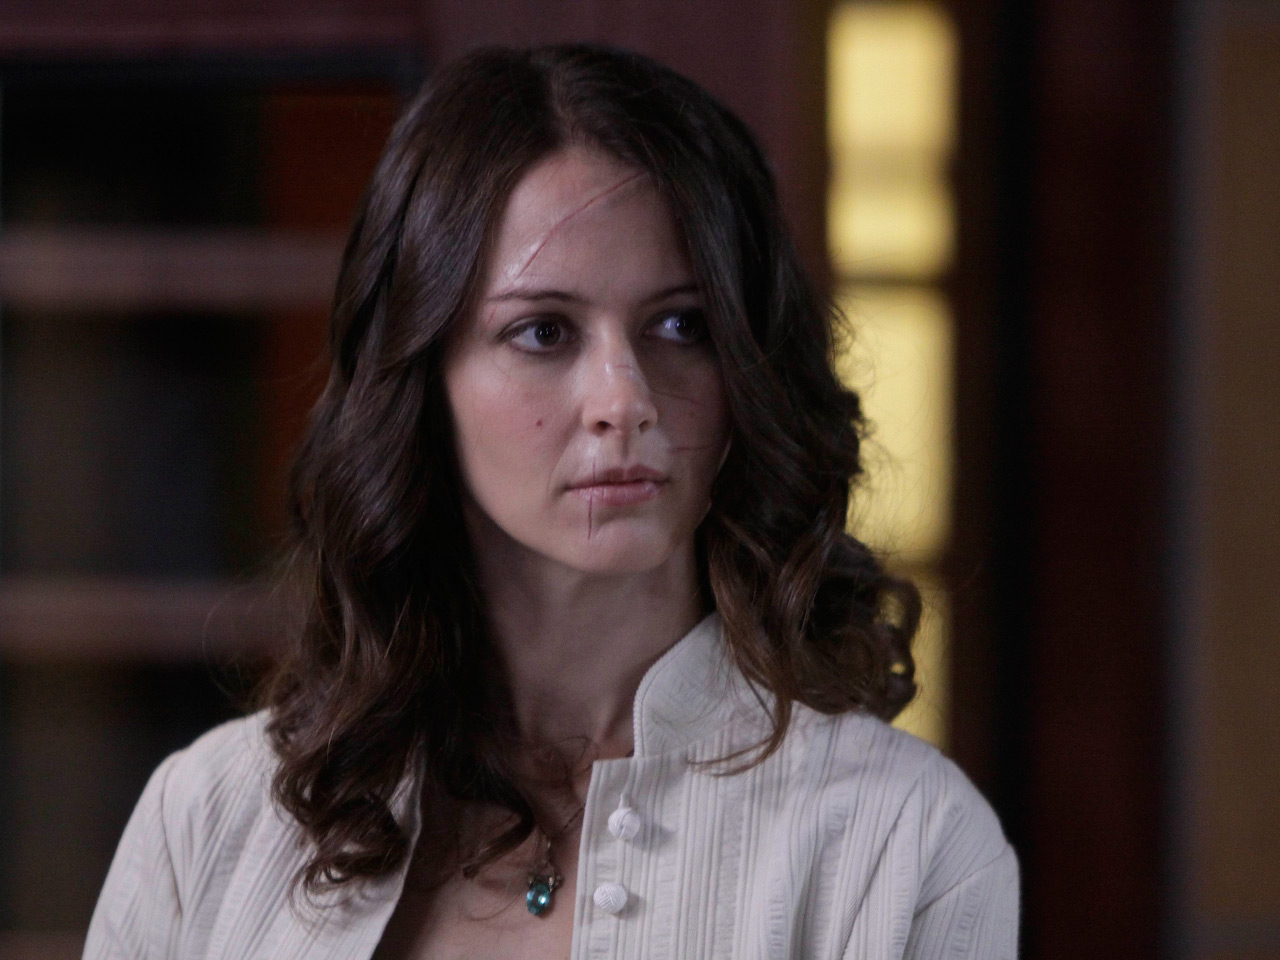 https://dvdbash.files.wordpress.com/2012/02/dollhouse-amy-acker-dvdbash-1.jpg